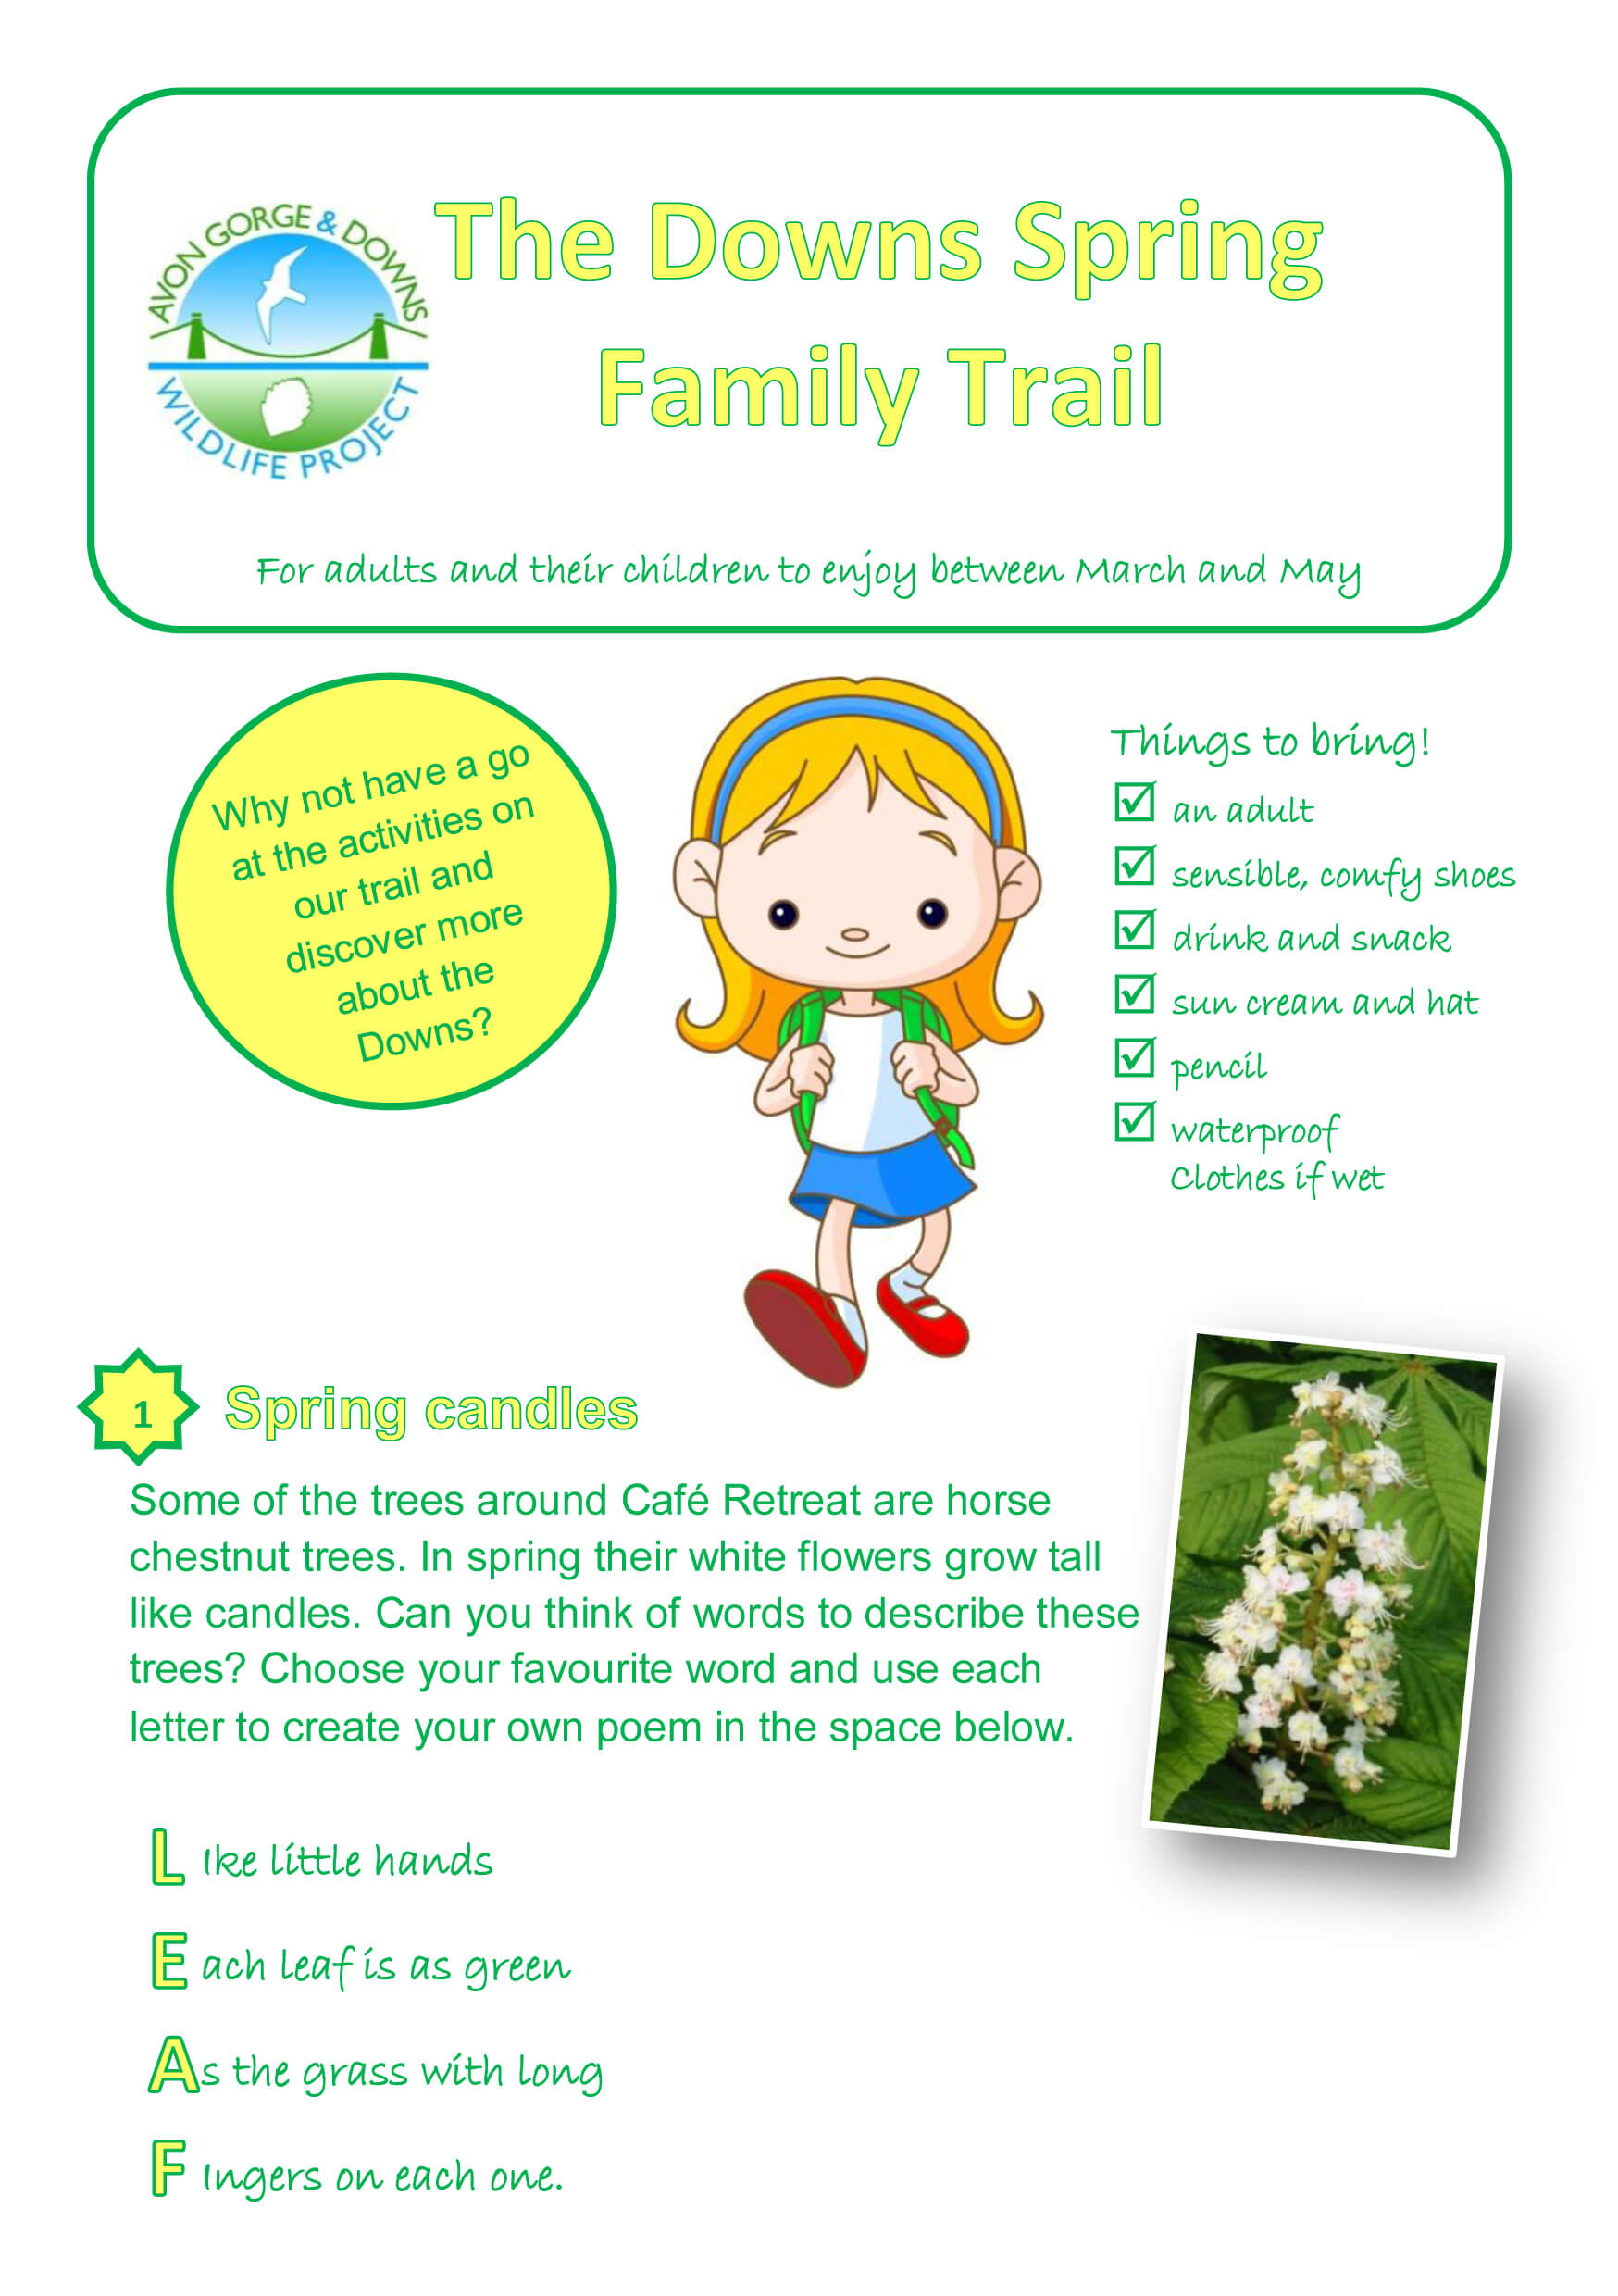 The Downs spring family trail